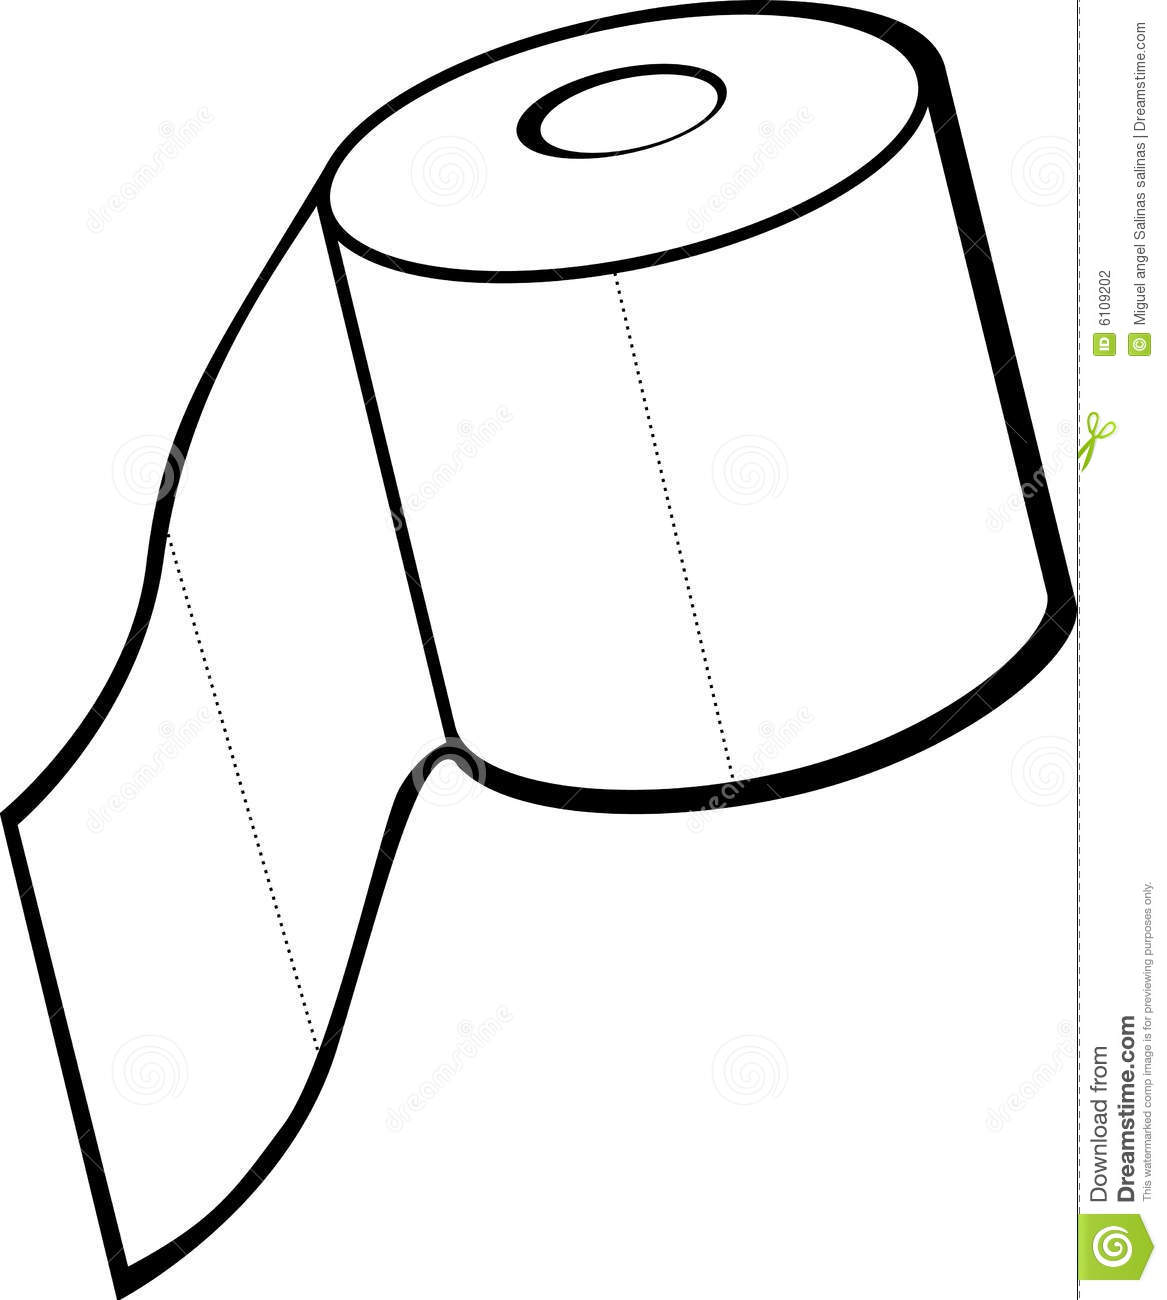 Clip Art Toilet Paper Clip Art toilet paper clipart kid roll vector illustration stock photography image